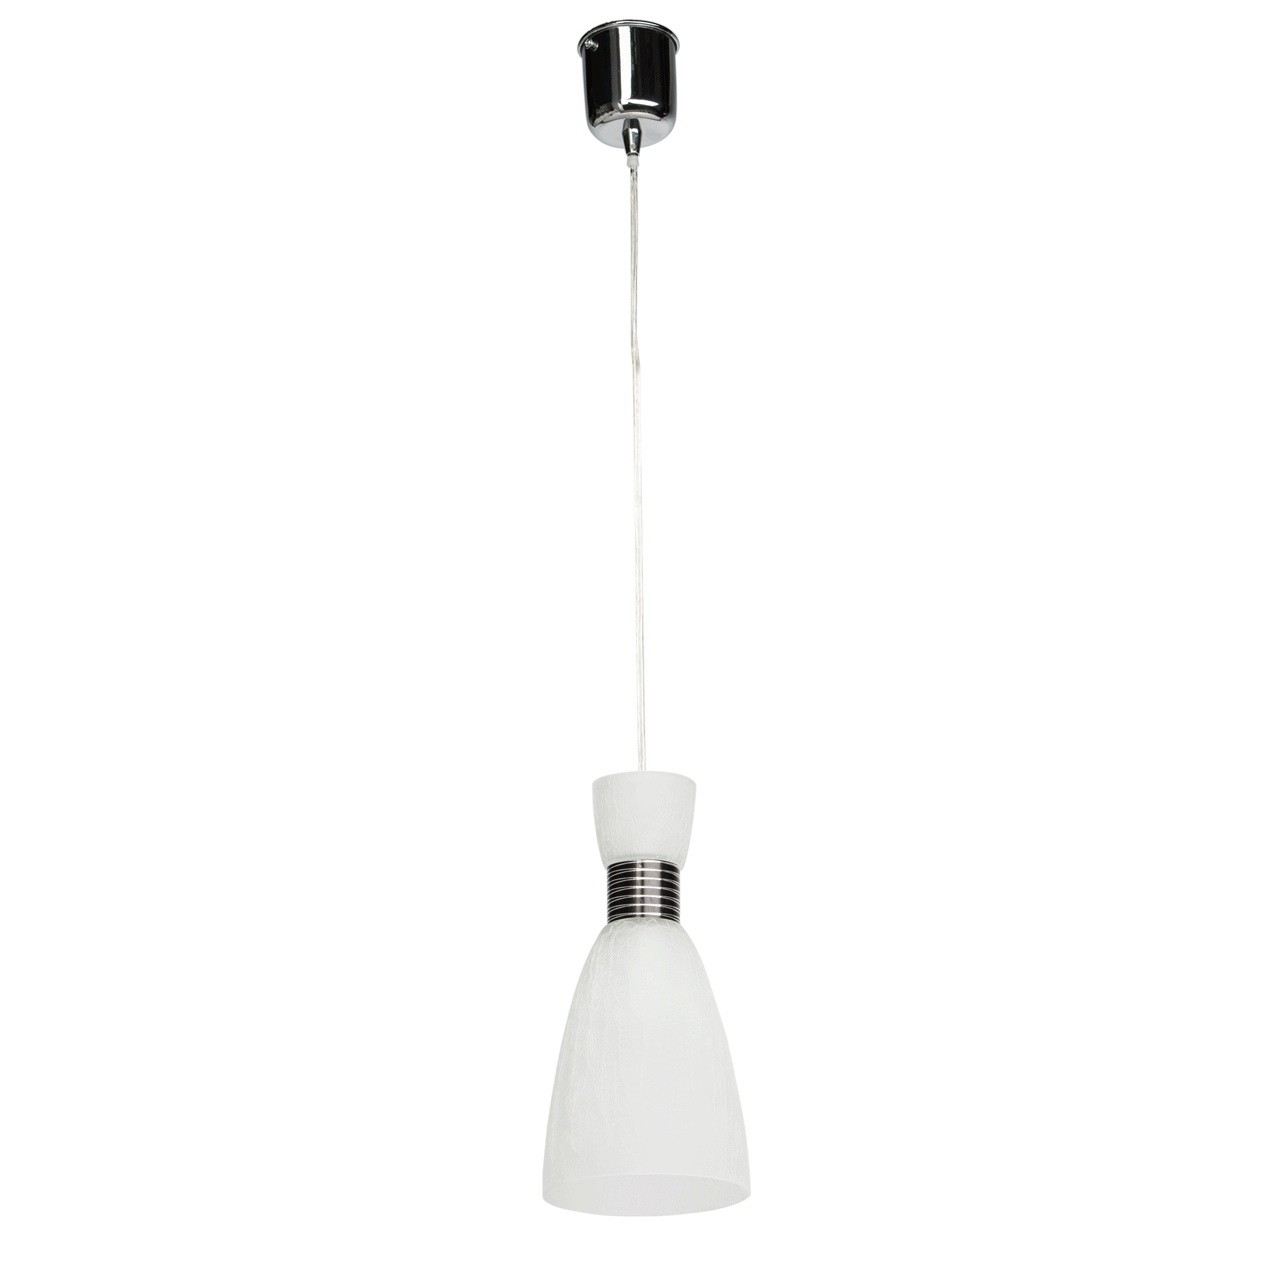 Suspension Pendant lamps